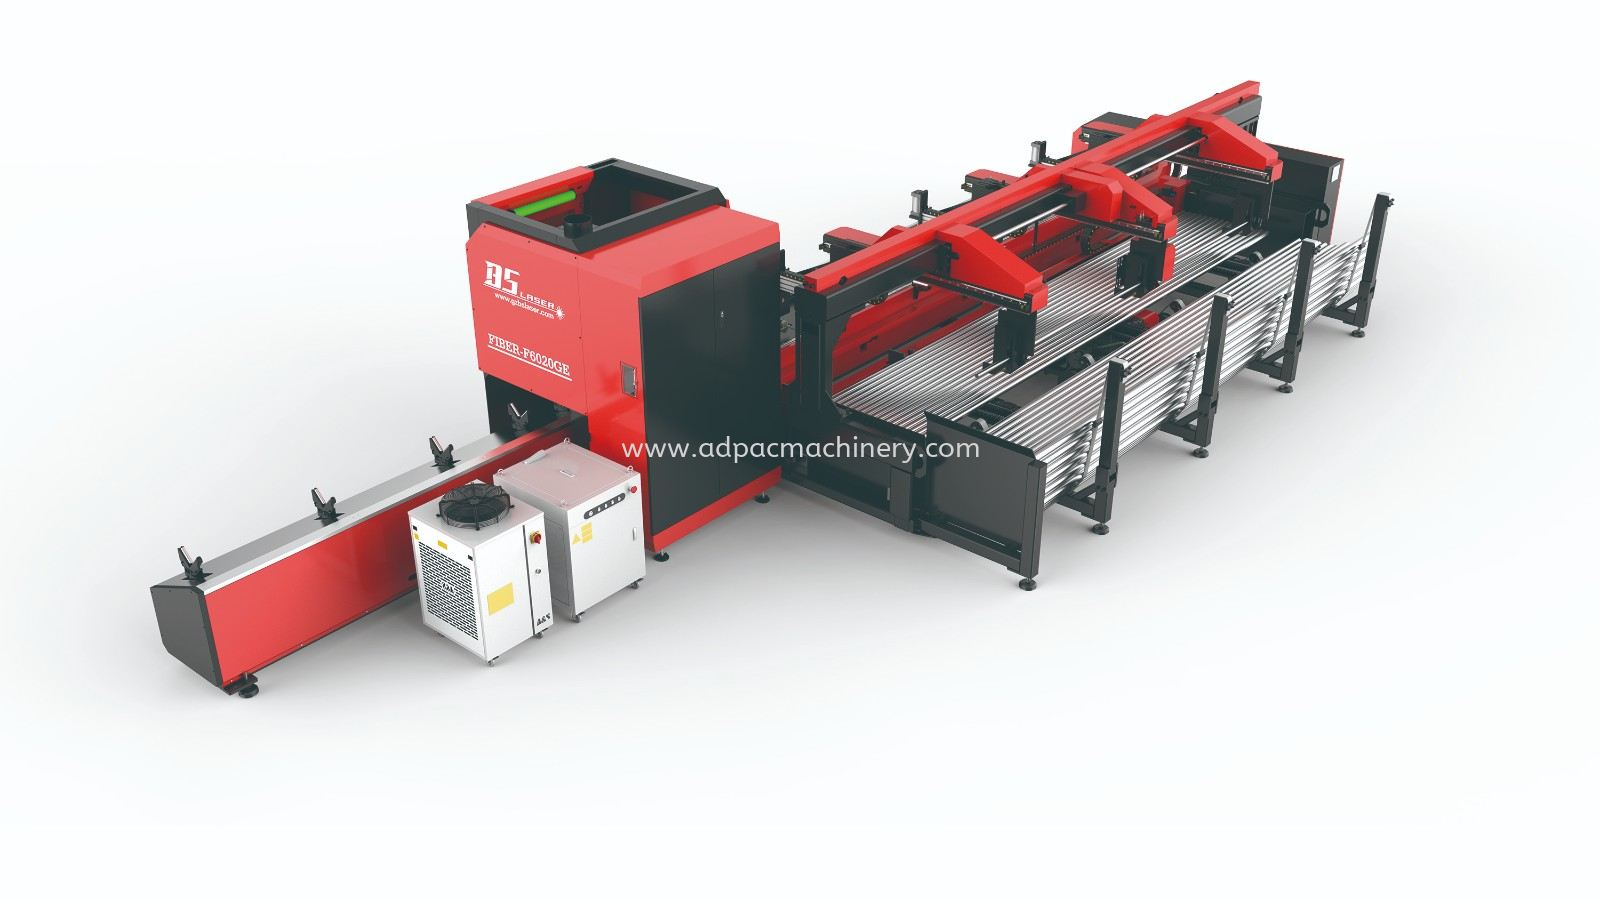 Automatic Laser Pipe/Tube Cutting Machine